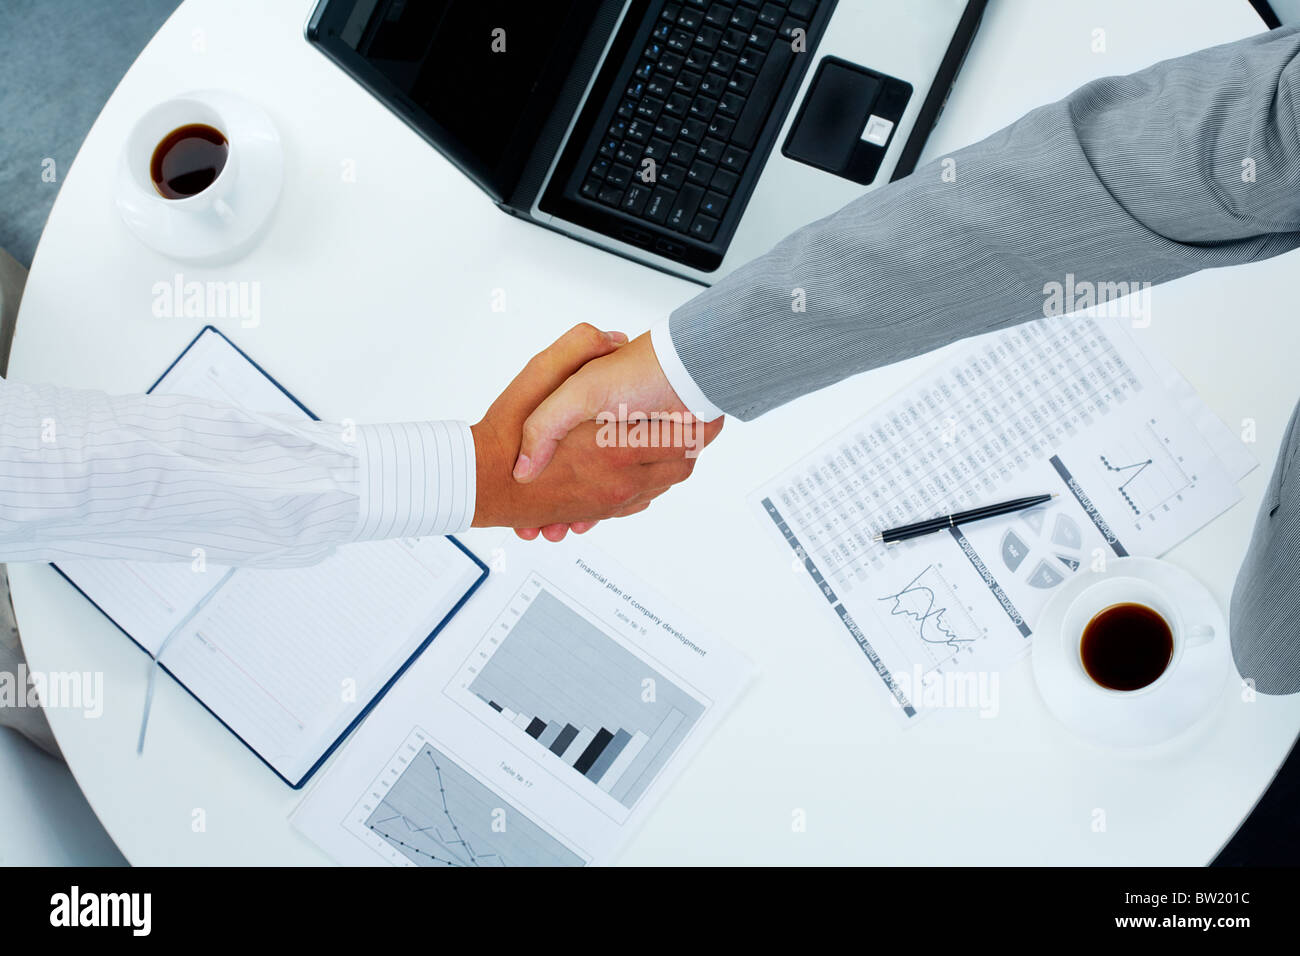 Photo of handshake of business partners after striking deal - Stock Image